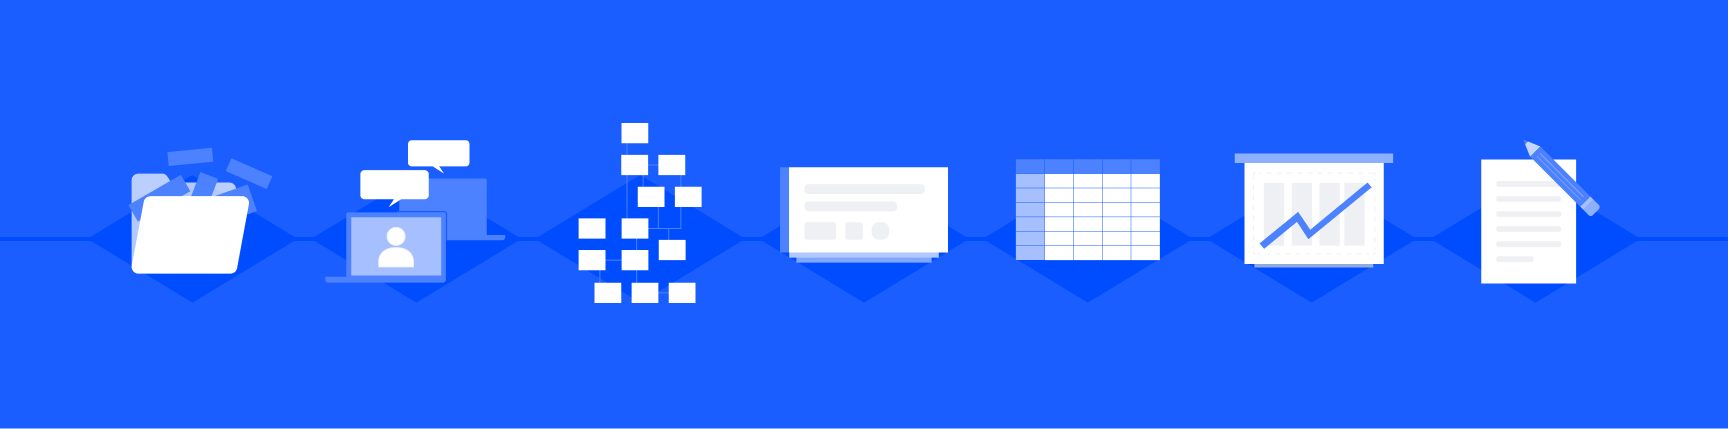 Workflow app visualization for teams including chat, collaboration, notes, and charts.